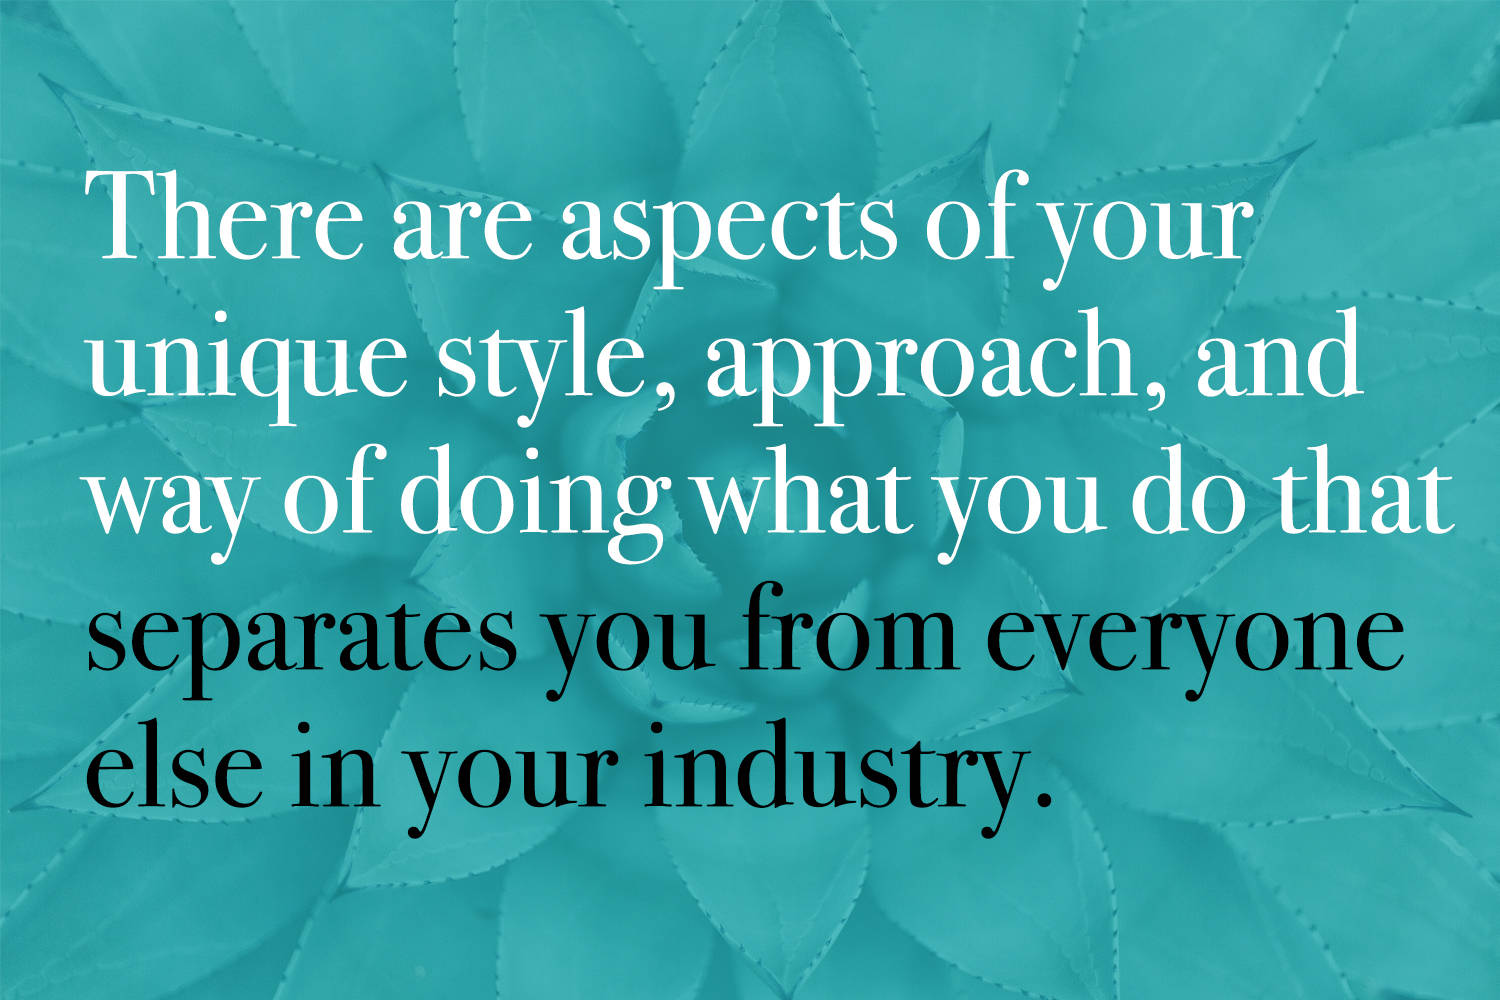 There are aspects of your unique style, approach, philosophy, and way of doing what you do that separates you from everyone else in your industry.